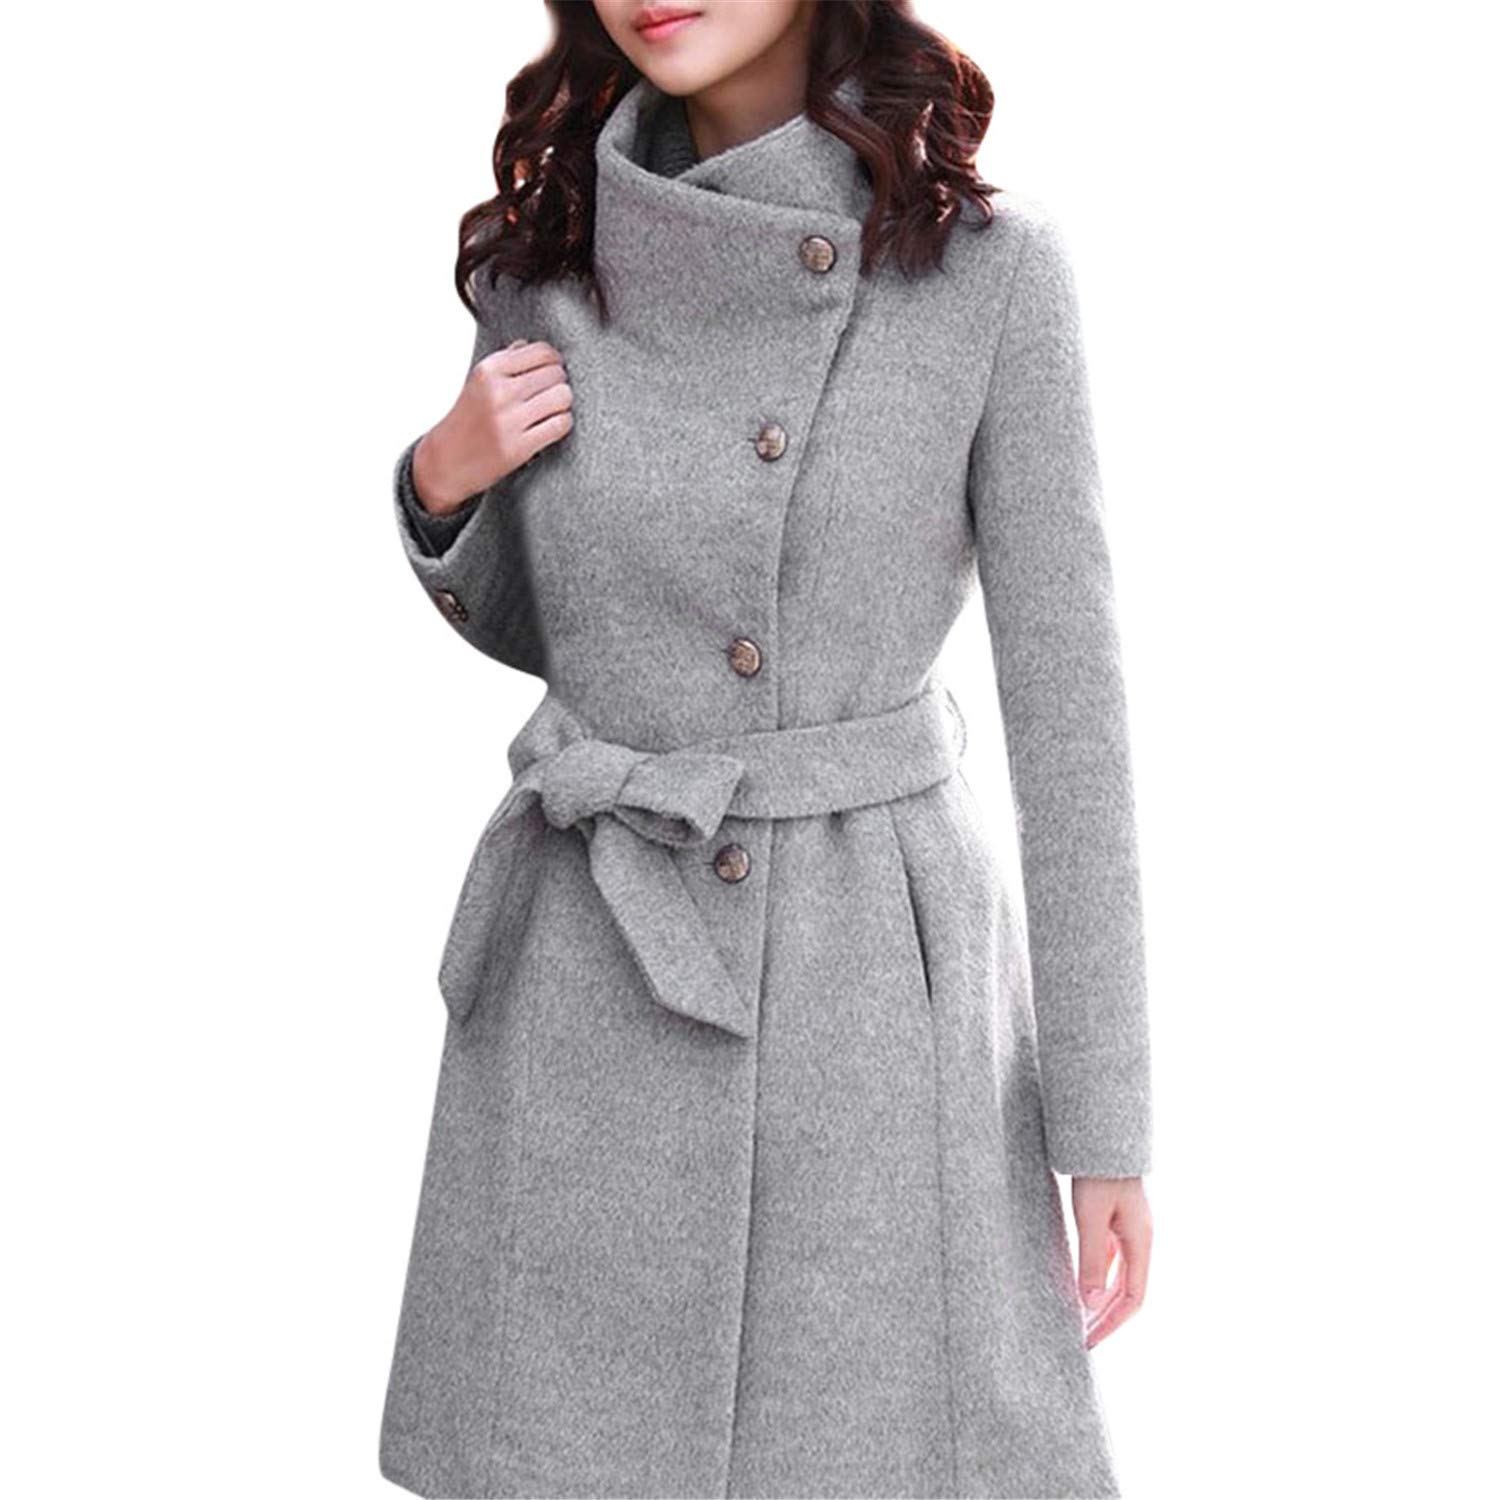 Amazon.com: Avory Winter Lapel Wool Coat Trench Jacket Long Sleeve Overcoat Outwear Oversize Long Gray Trench Coat Mujer: Clothing